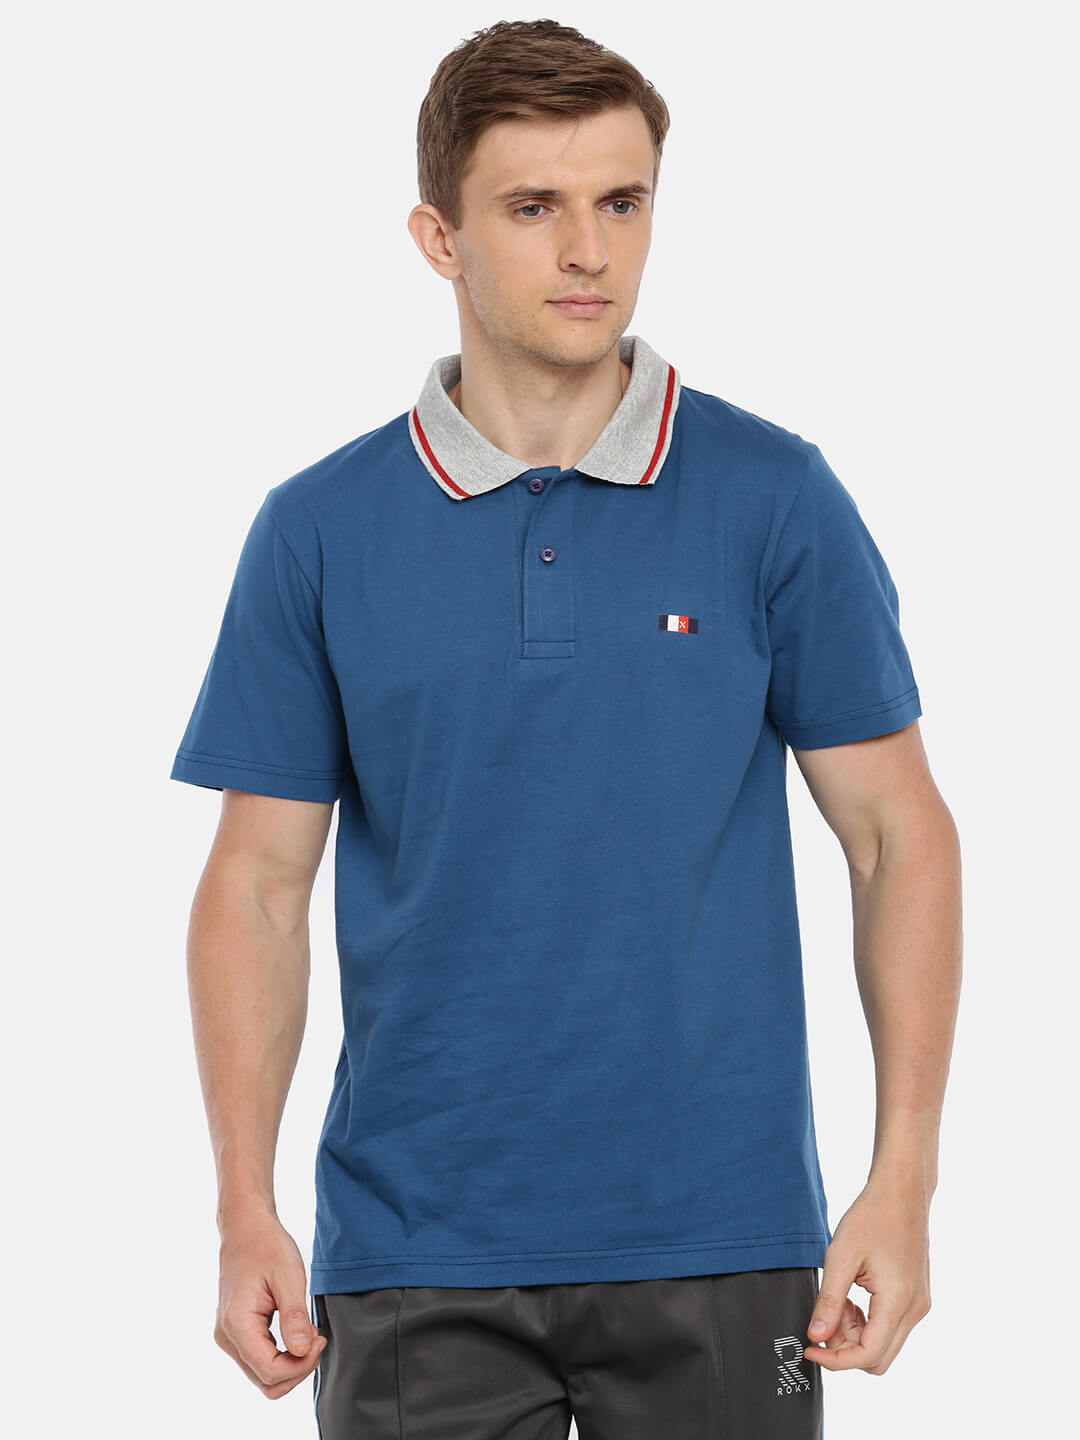 Polo T Shirts For Men - Premium Collar Half Sleeve T-Shirt - Front - Moroccan Blue